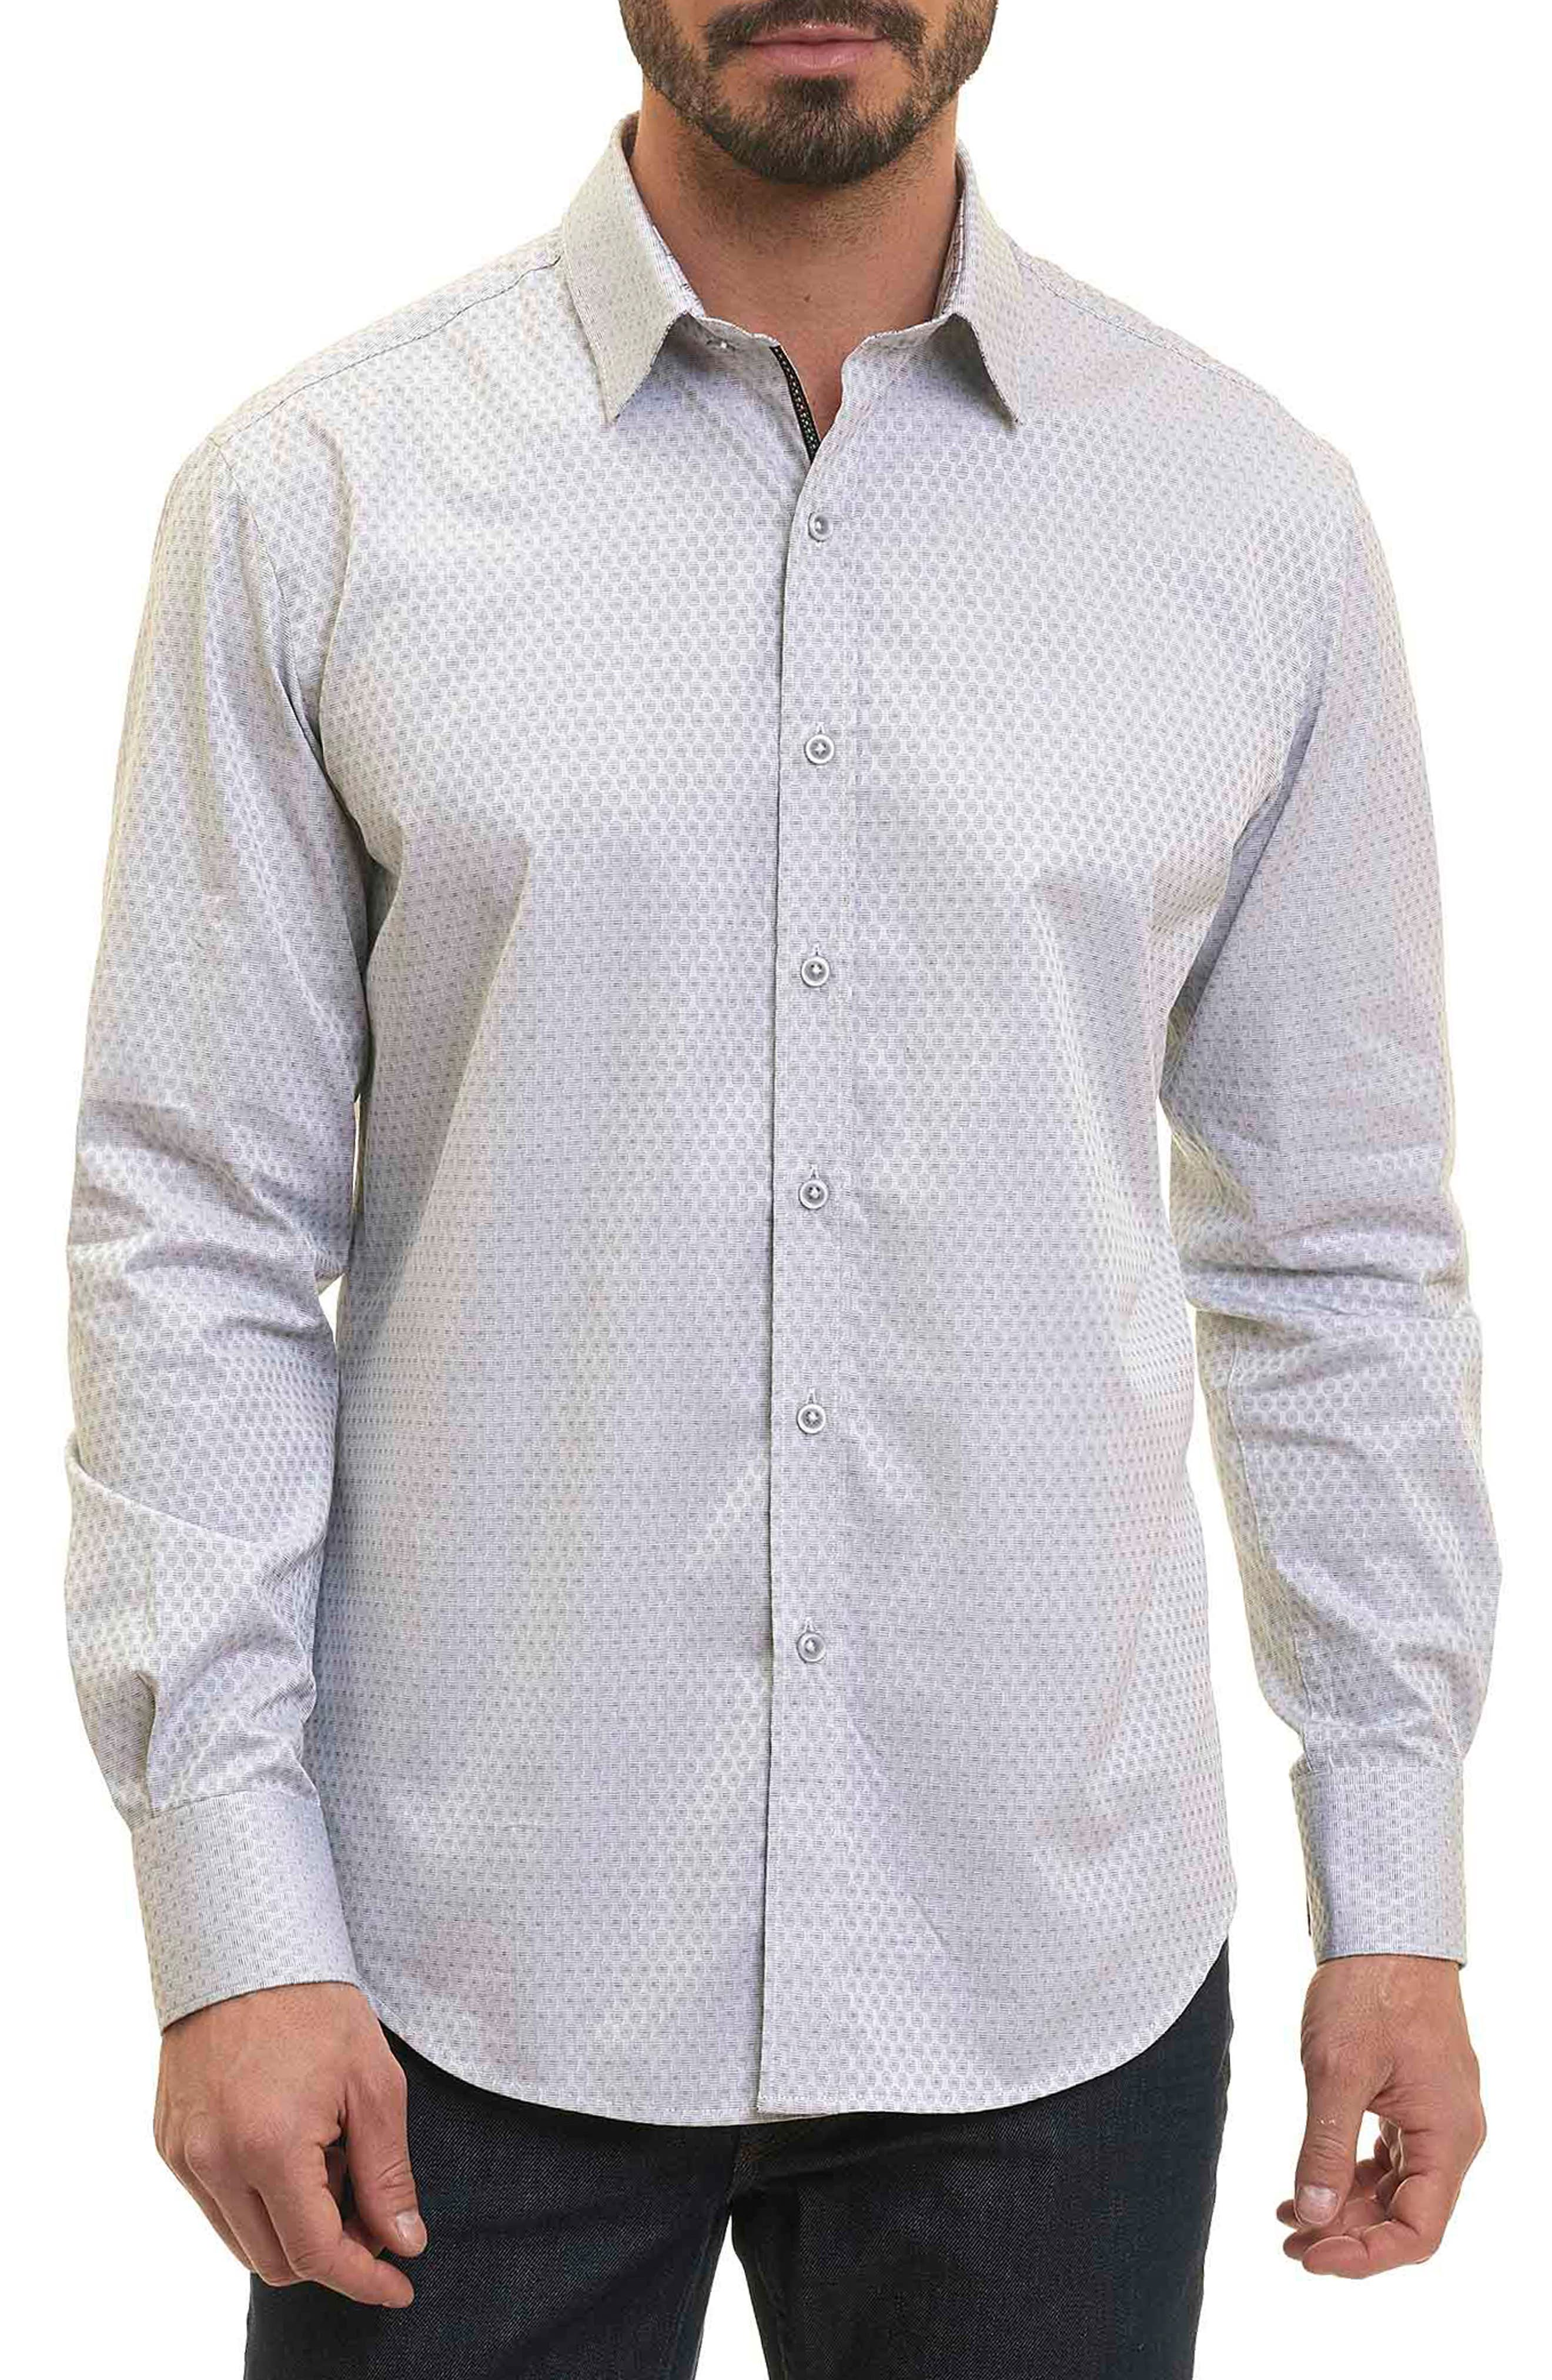 Main Image - Robert Graham Classic Fit Print Sport Shirt